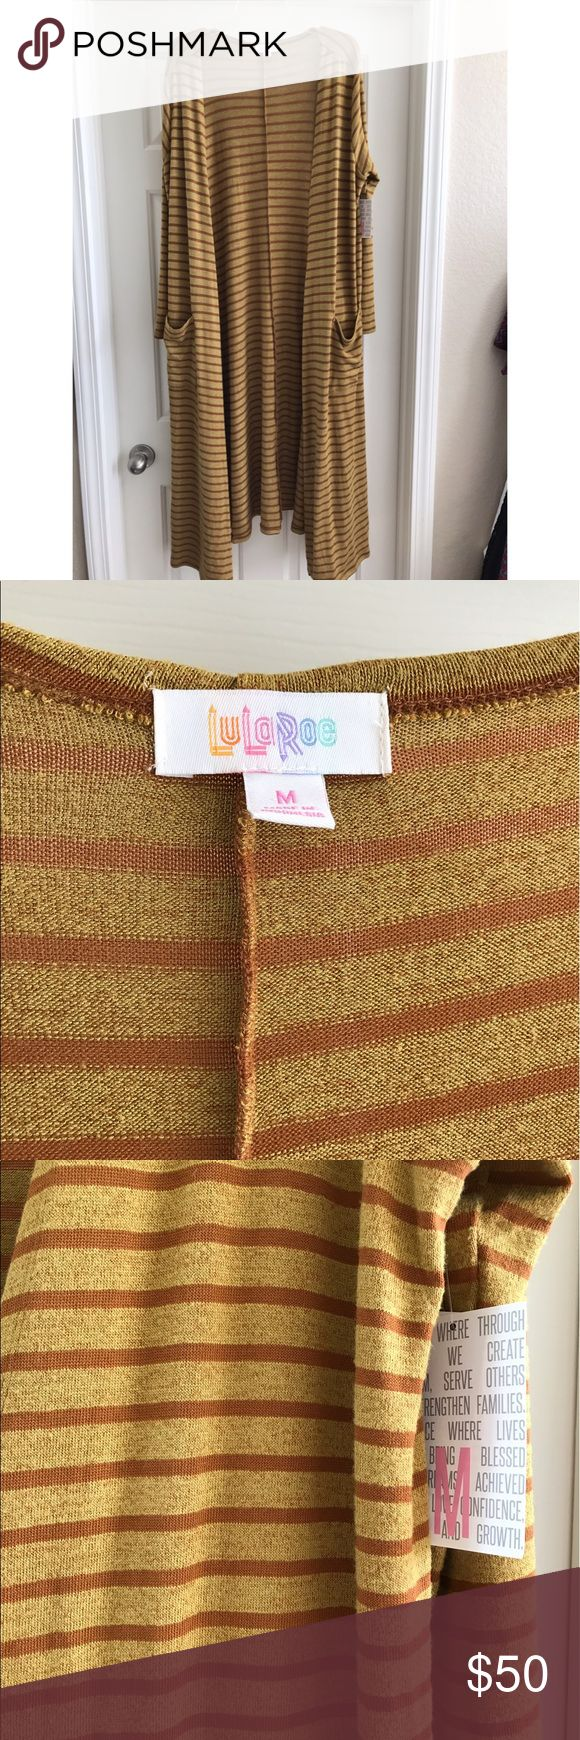 M Lularoe Sarah mustard cardigan. NWT Brand new and super stretchy. Striped mustard color duster cardigan. LuLaRoe Sweaters Cardigans